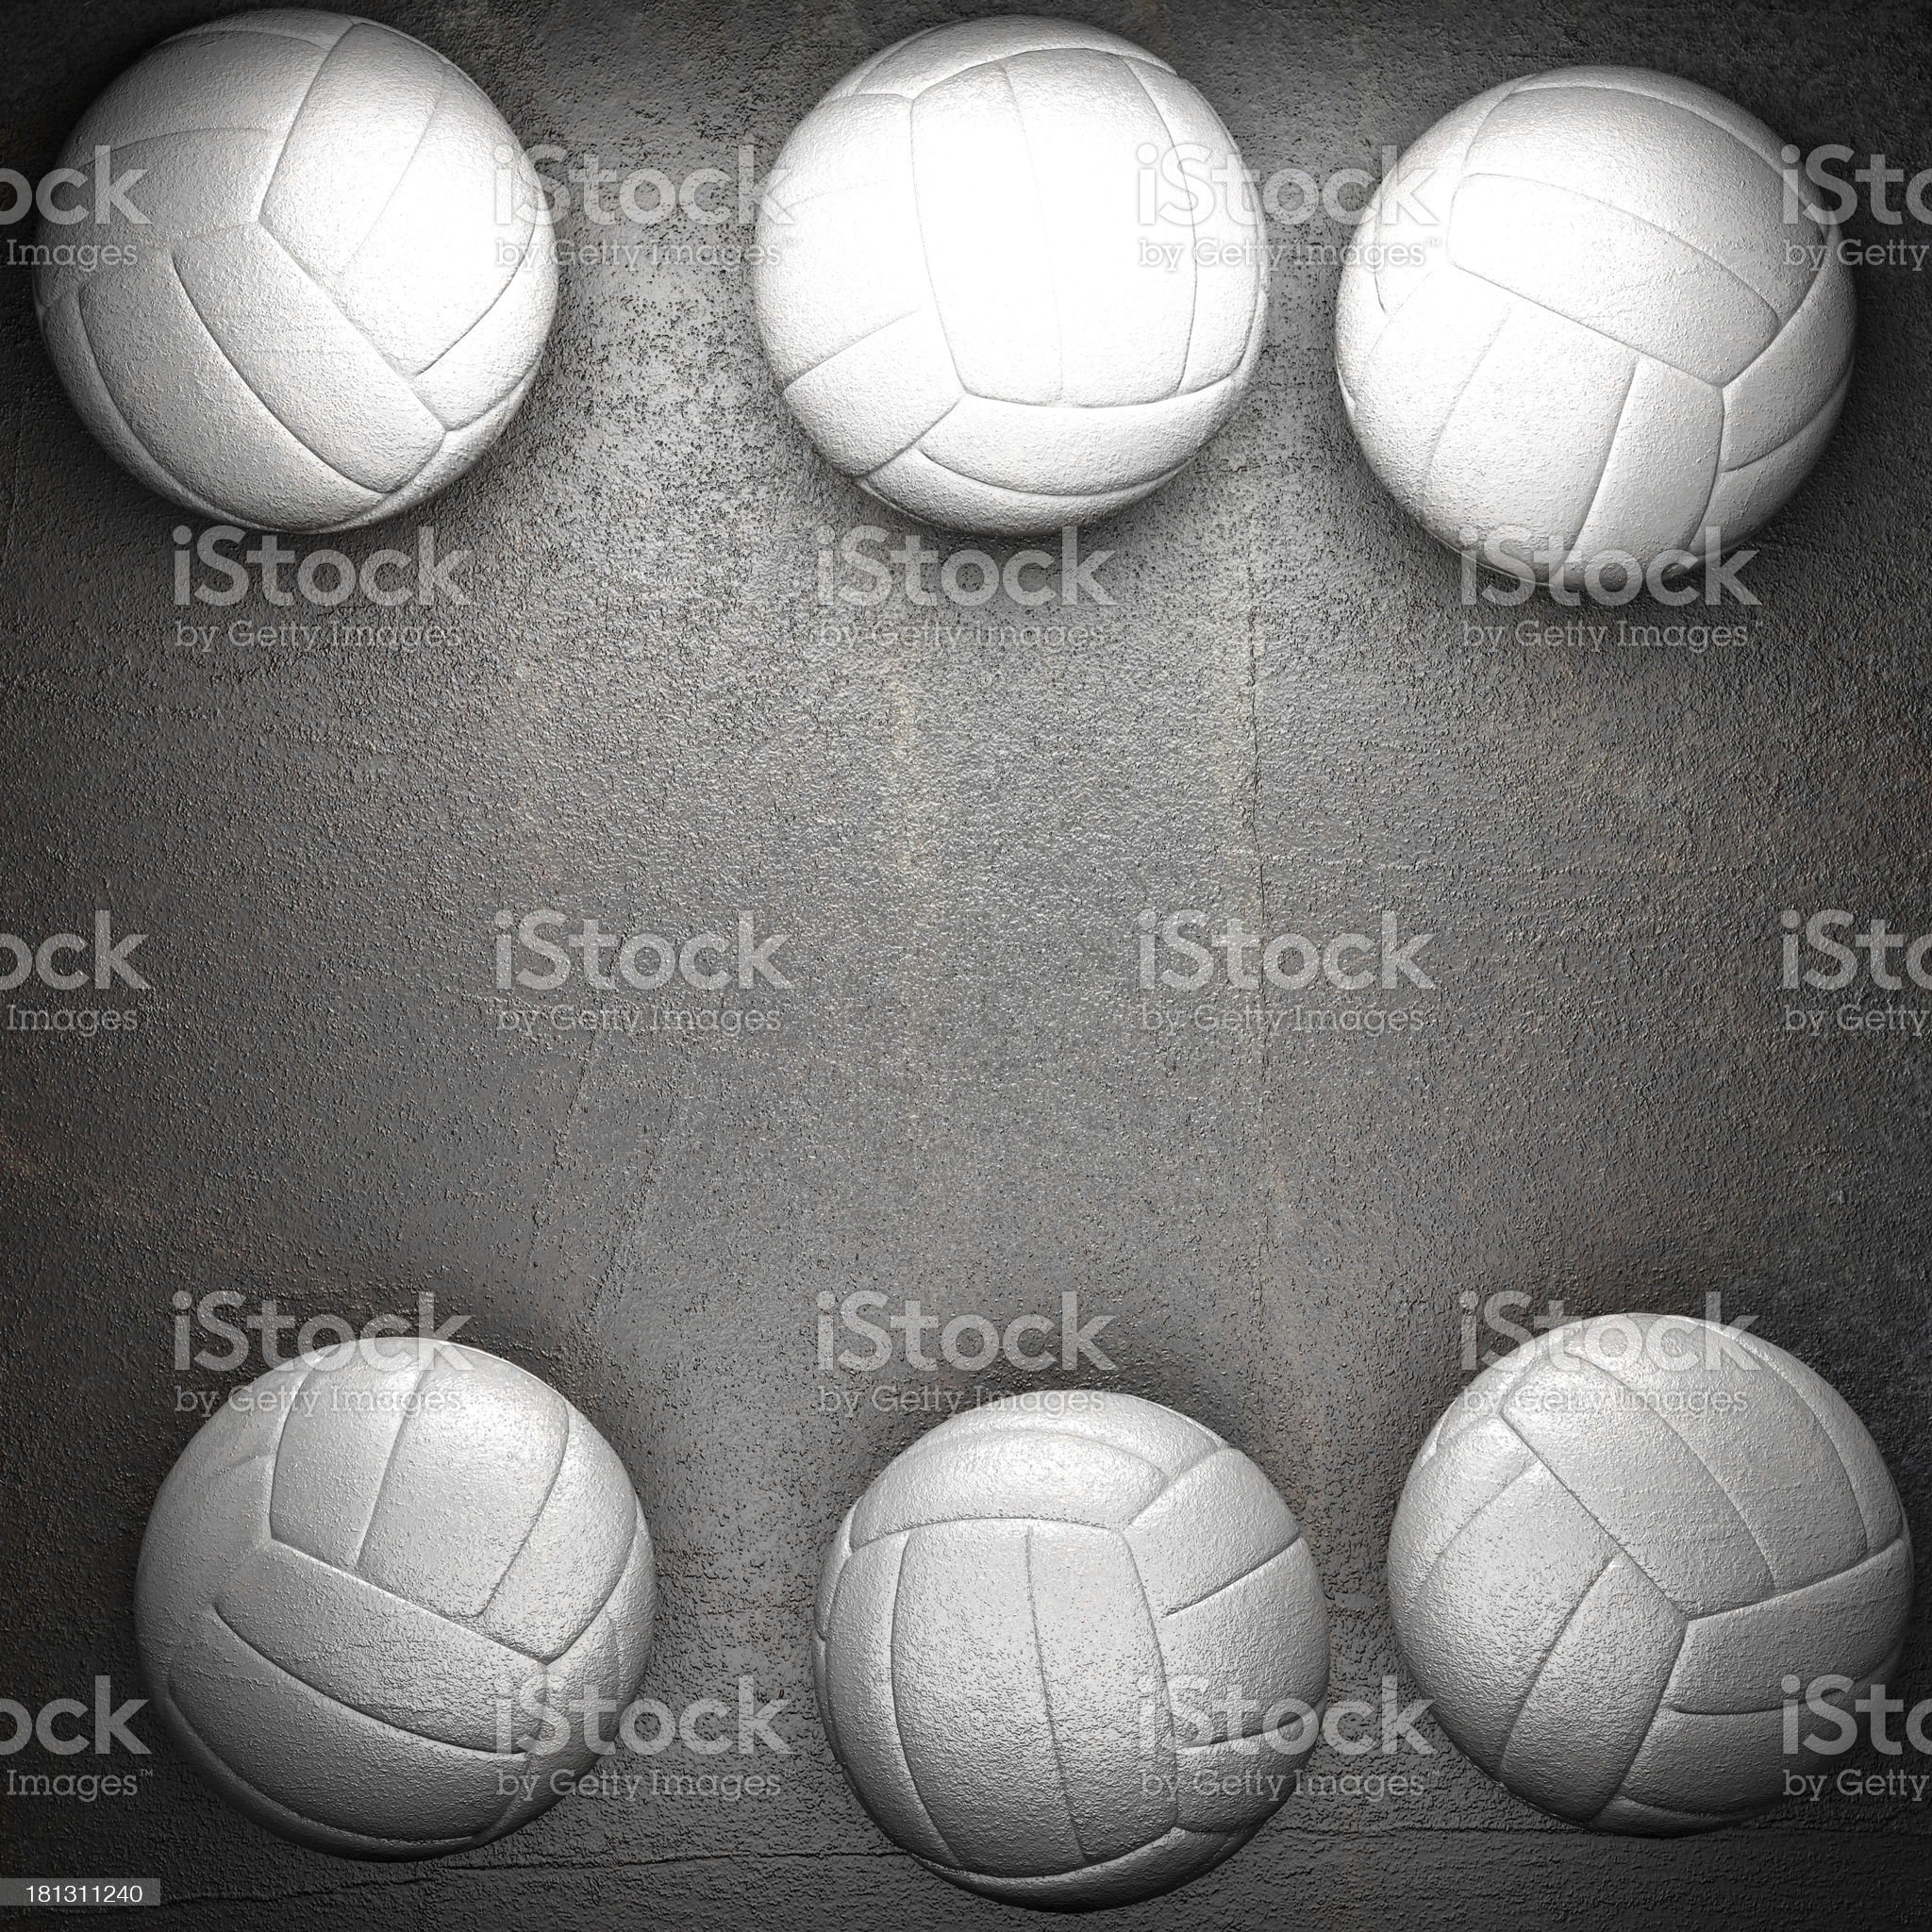 Volleyball ball and metal wall background royalty-free stock photo